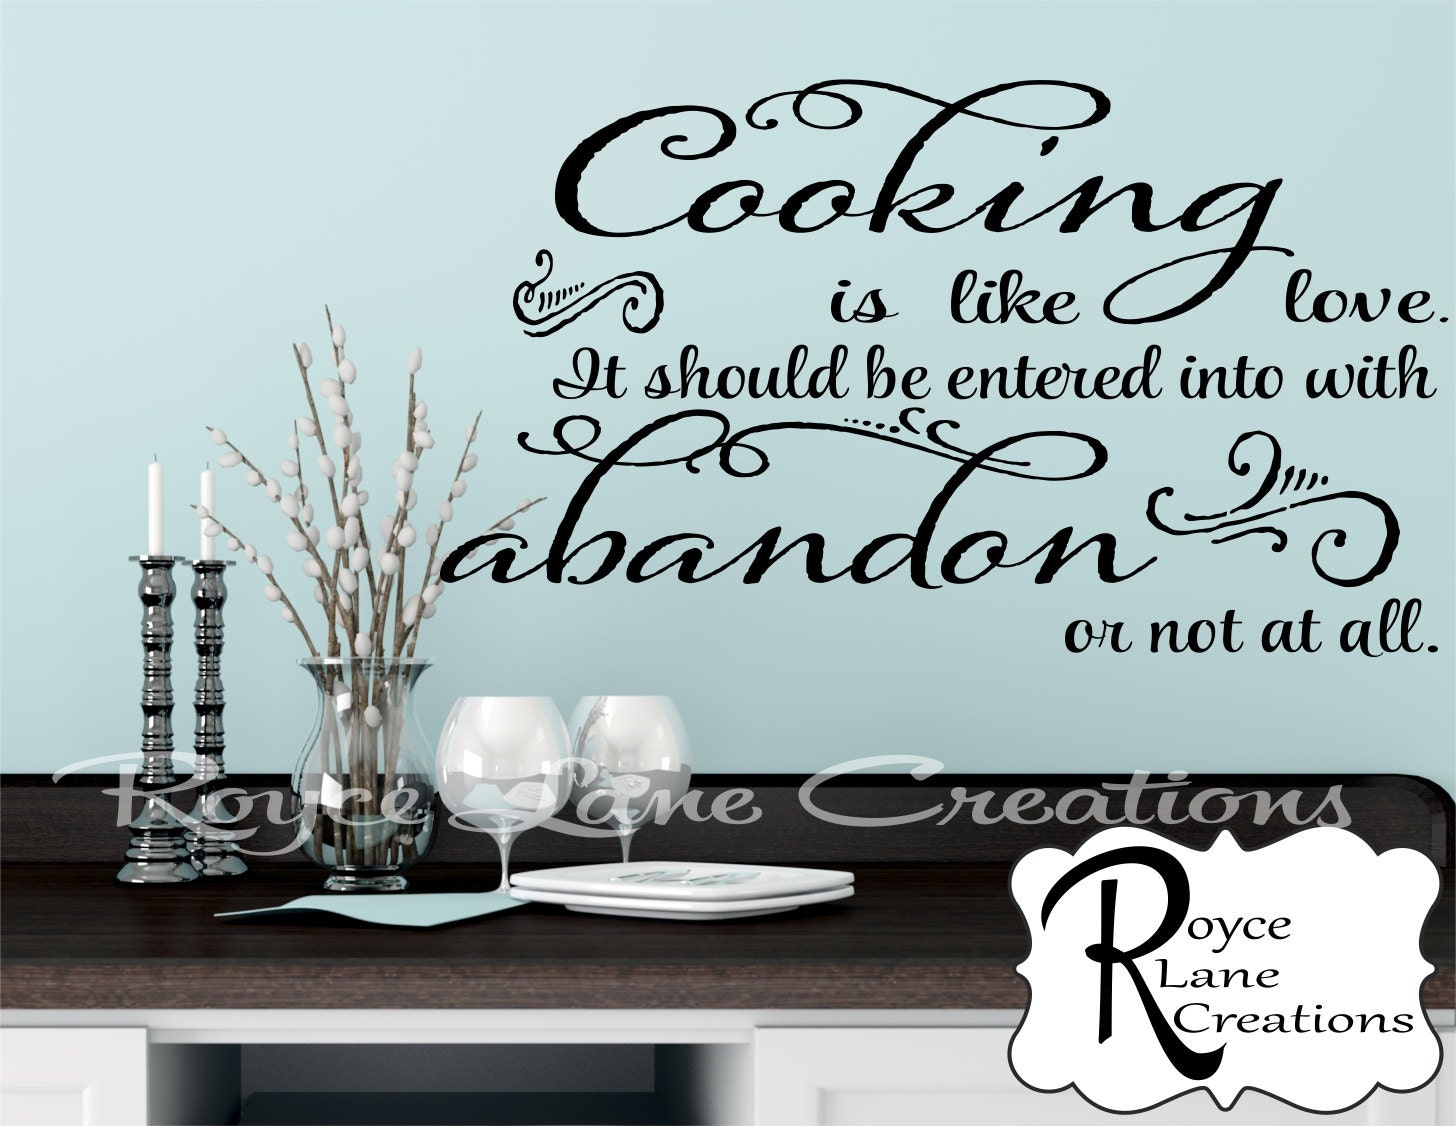 High Quality Kitchen Wall Decal  Cooking Is Like Love Kitchen Quote Decal Kitchen Quote Wall  Decals  Kitchen Decor Kitchen Wall Decor Kitchen Wall Art